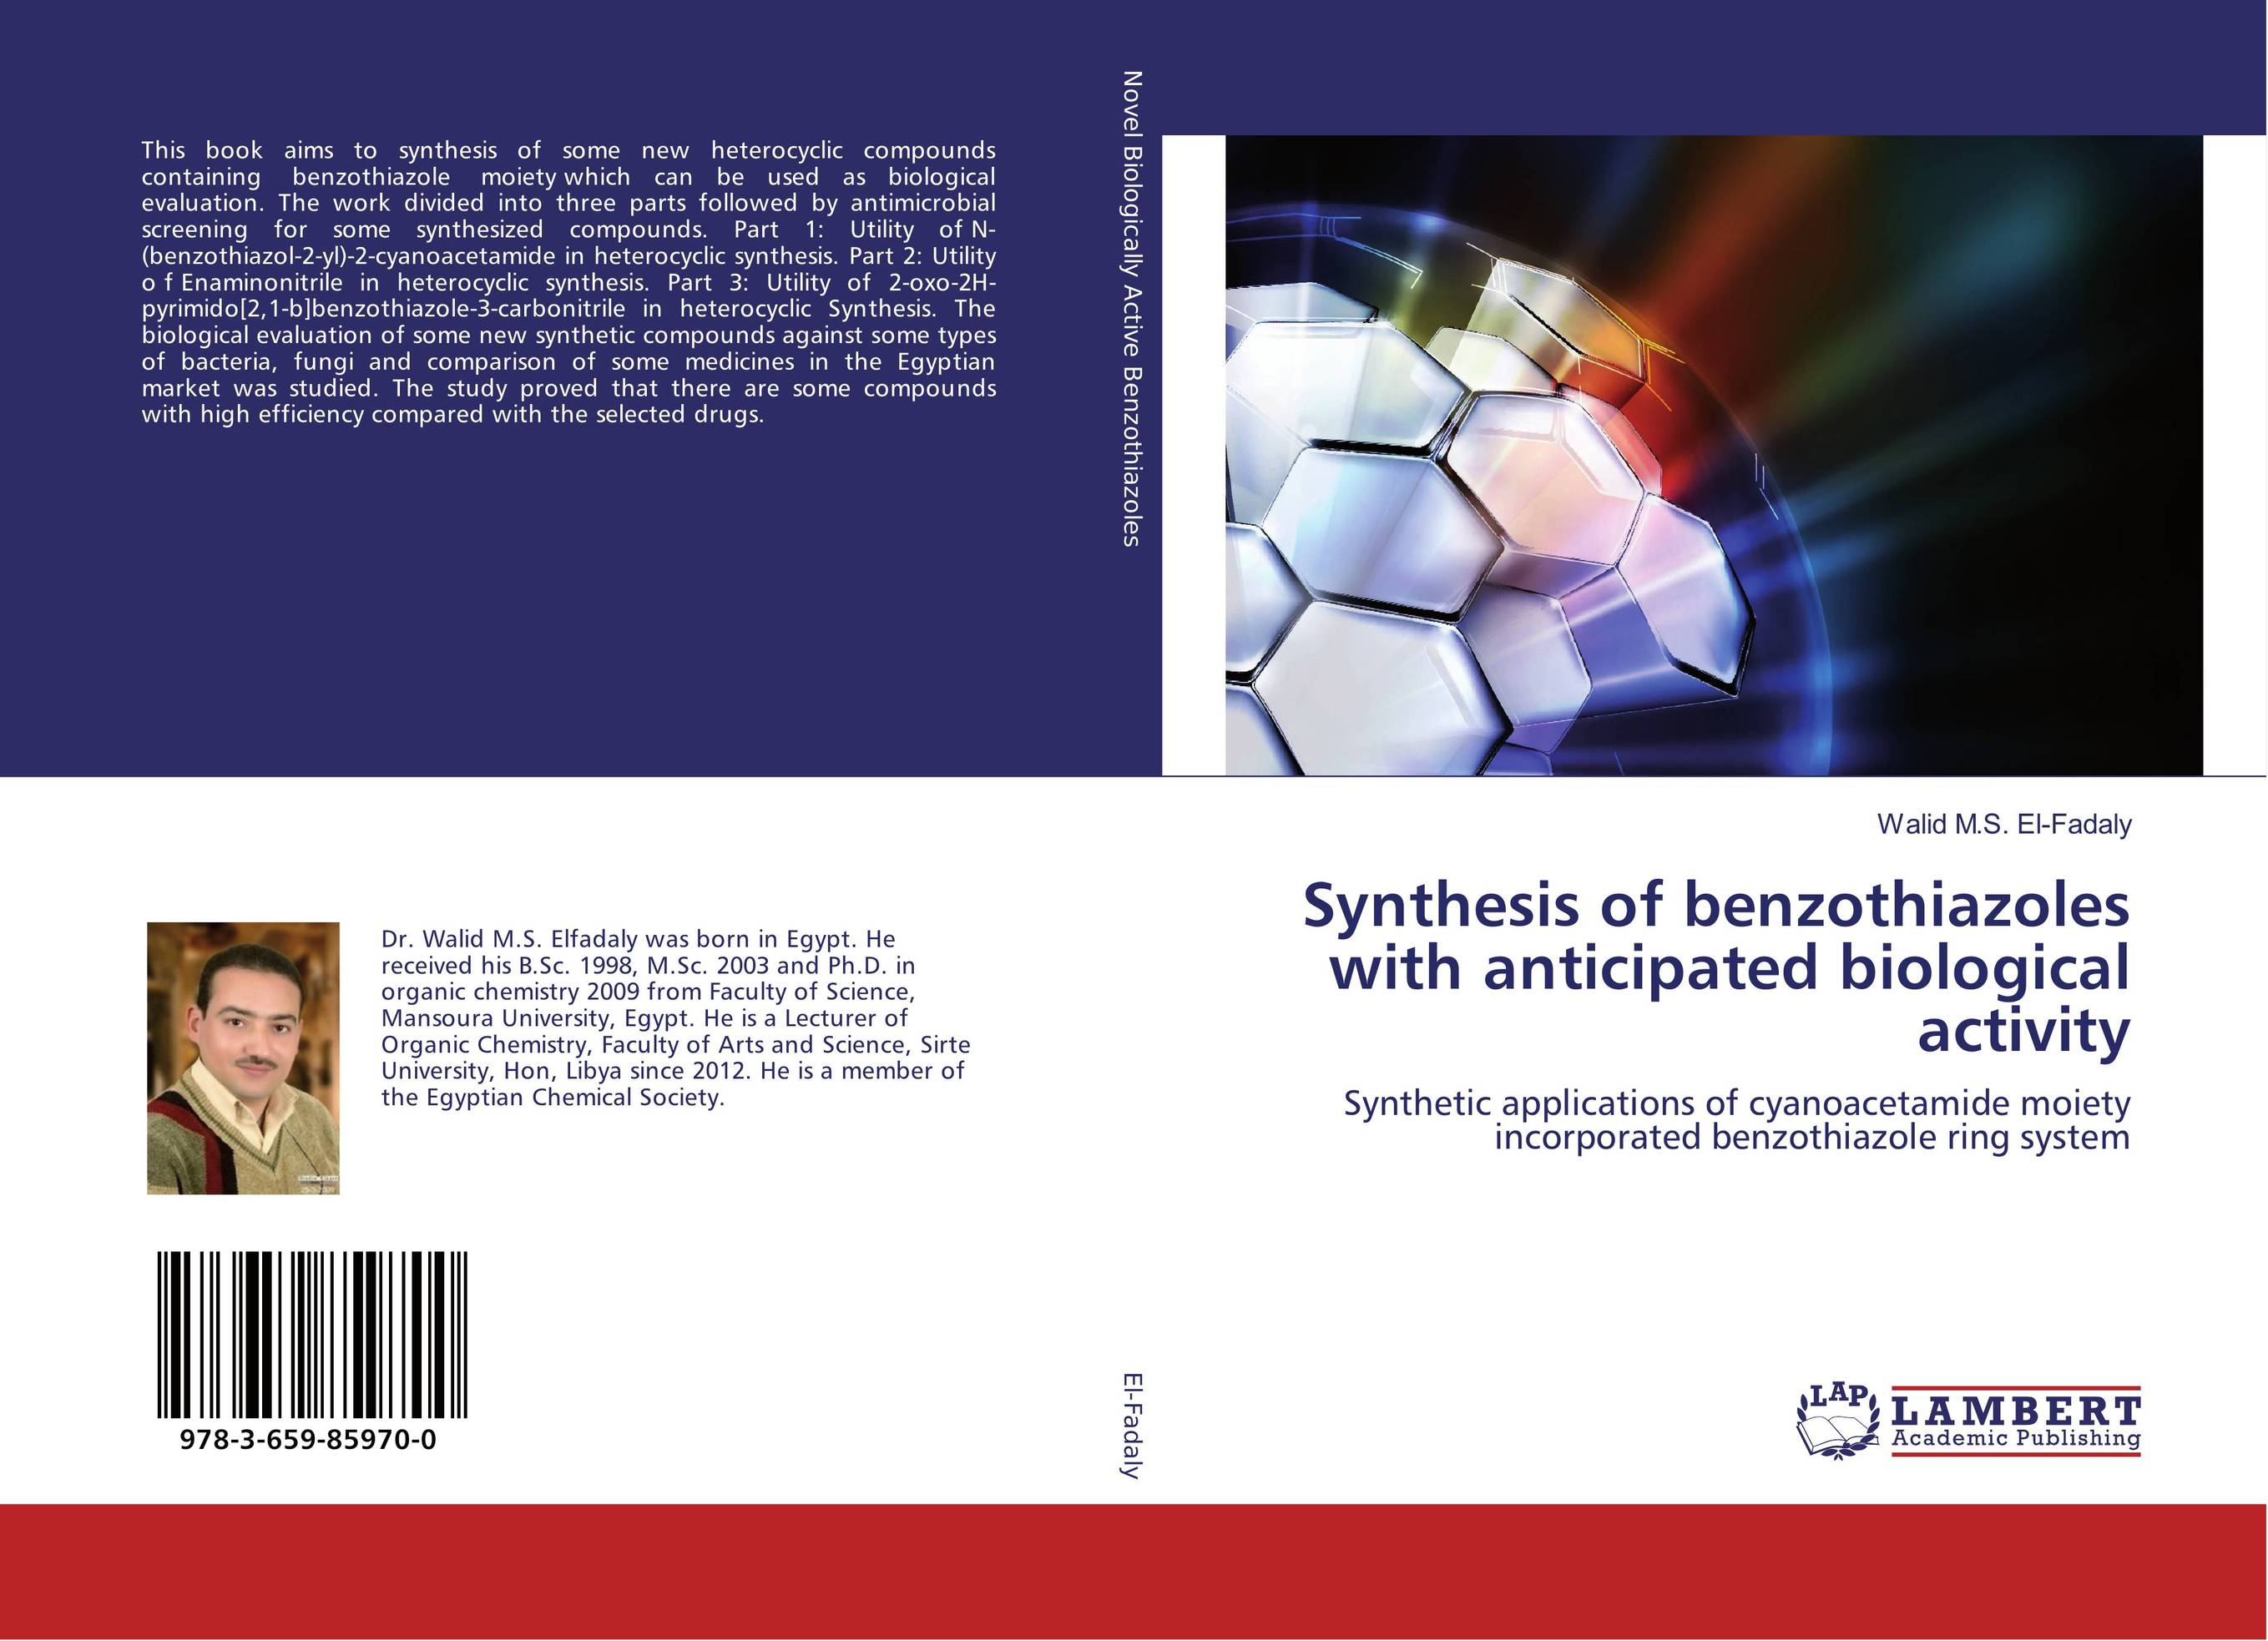 Synthesis of benzothiazoles with anticipated biological activity